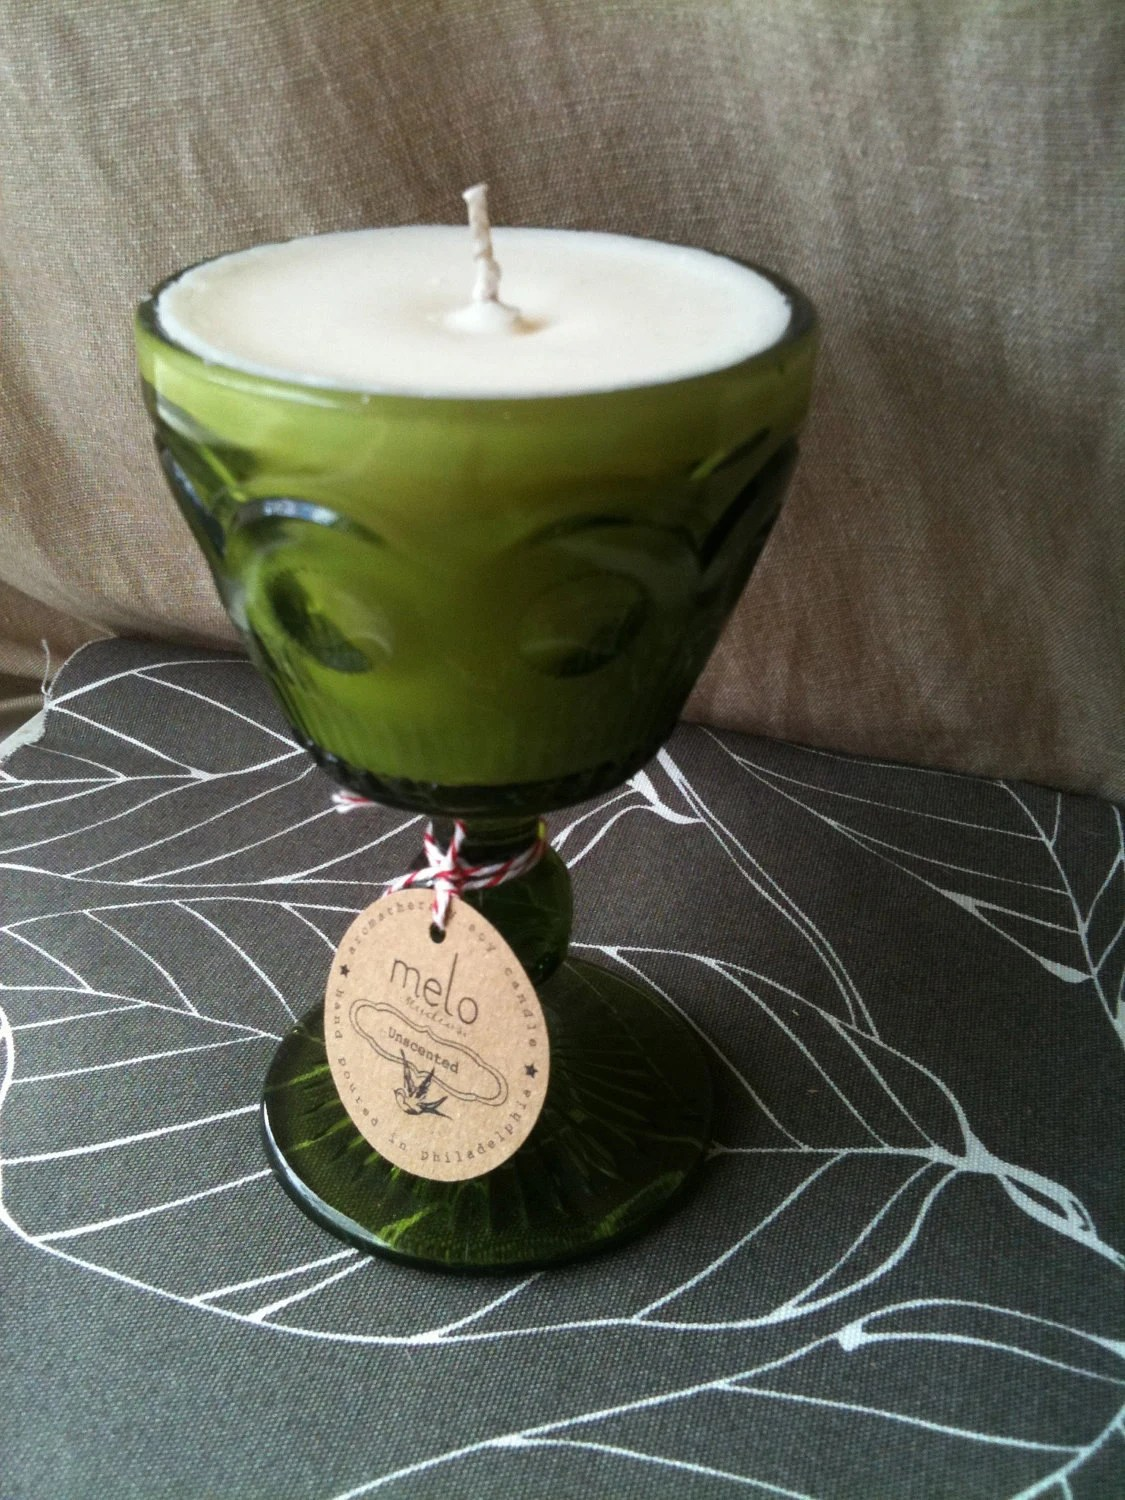 Vintage glass unscented soy candle - melostudios